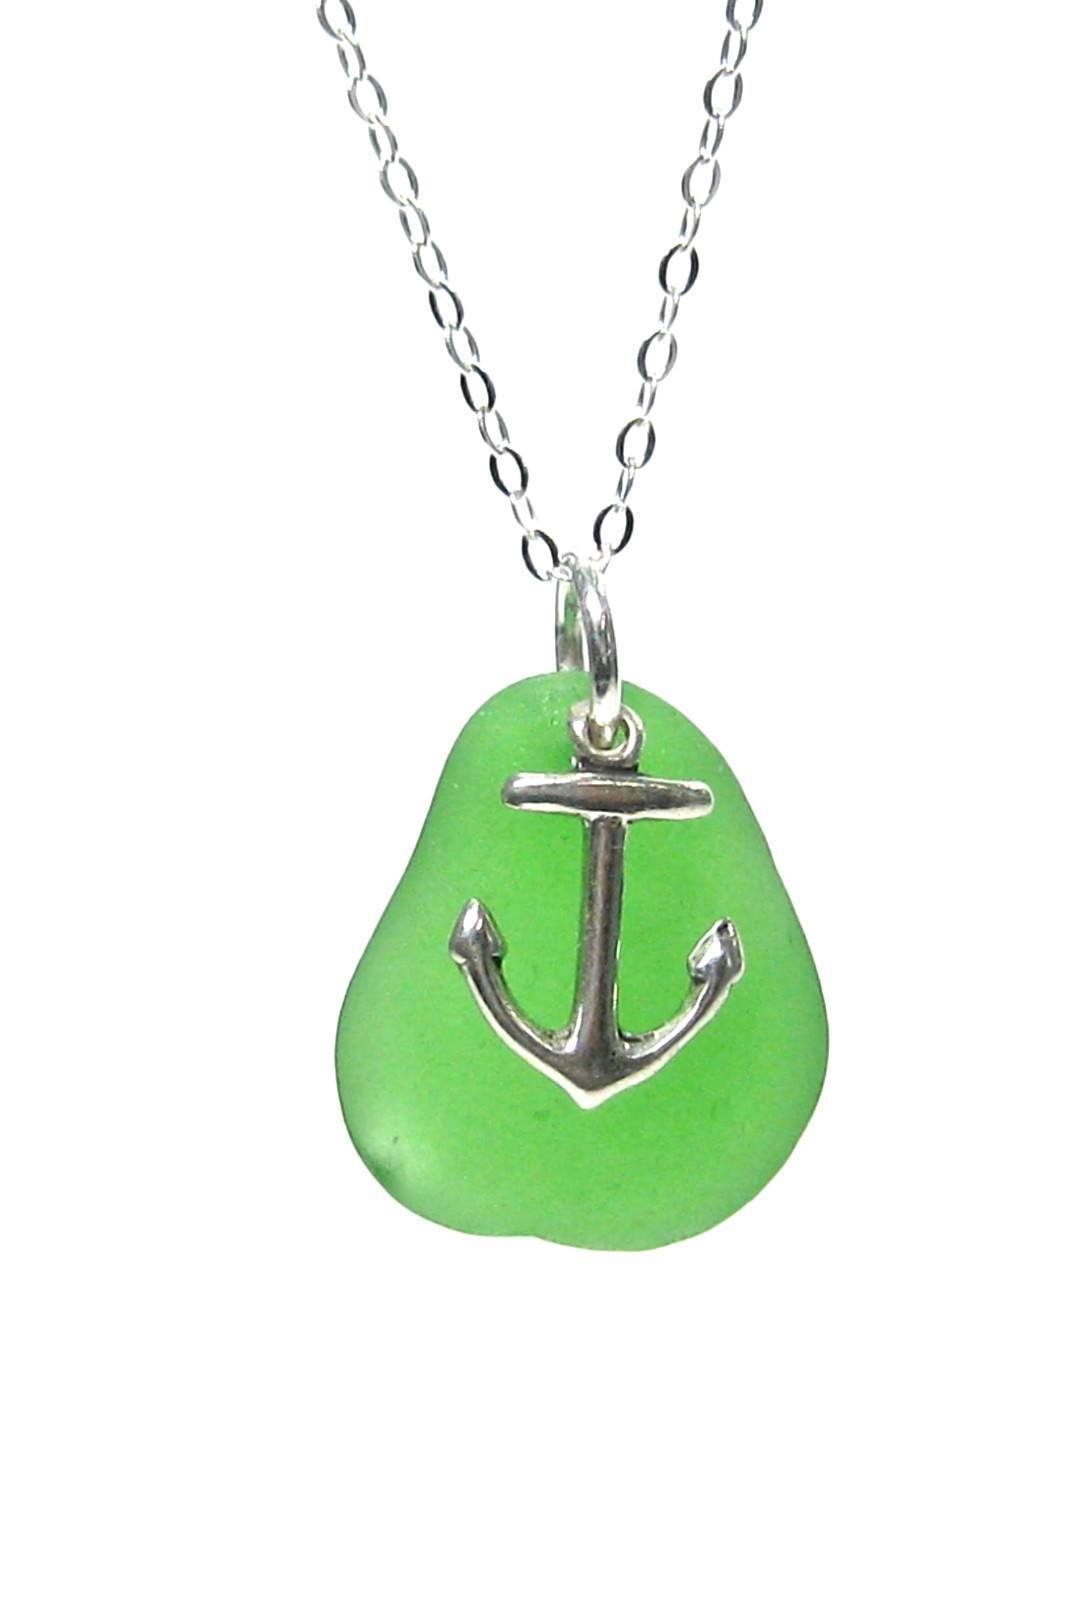 Womens>Accessories>Jewelry - Anchor Charm Sea Glass Necklace